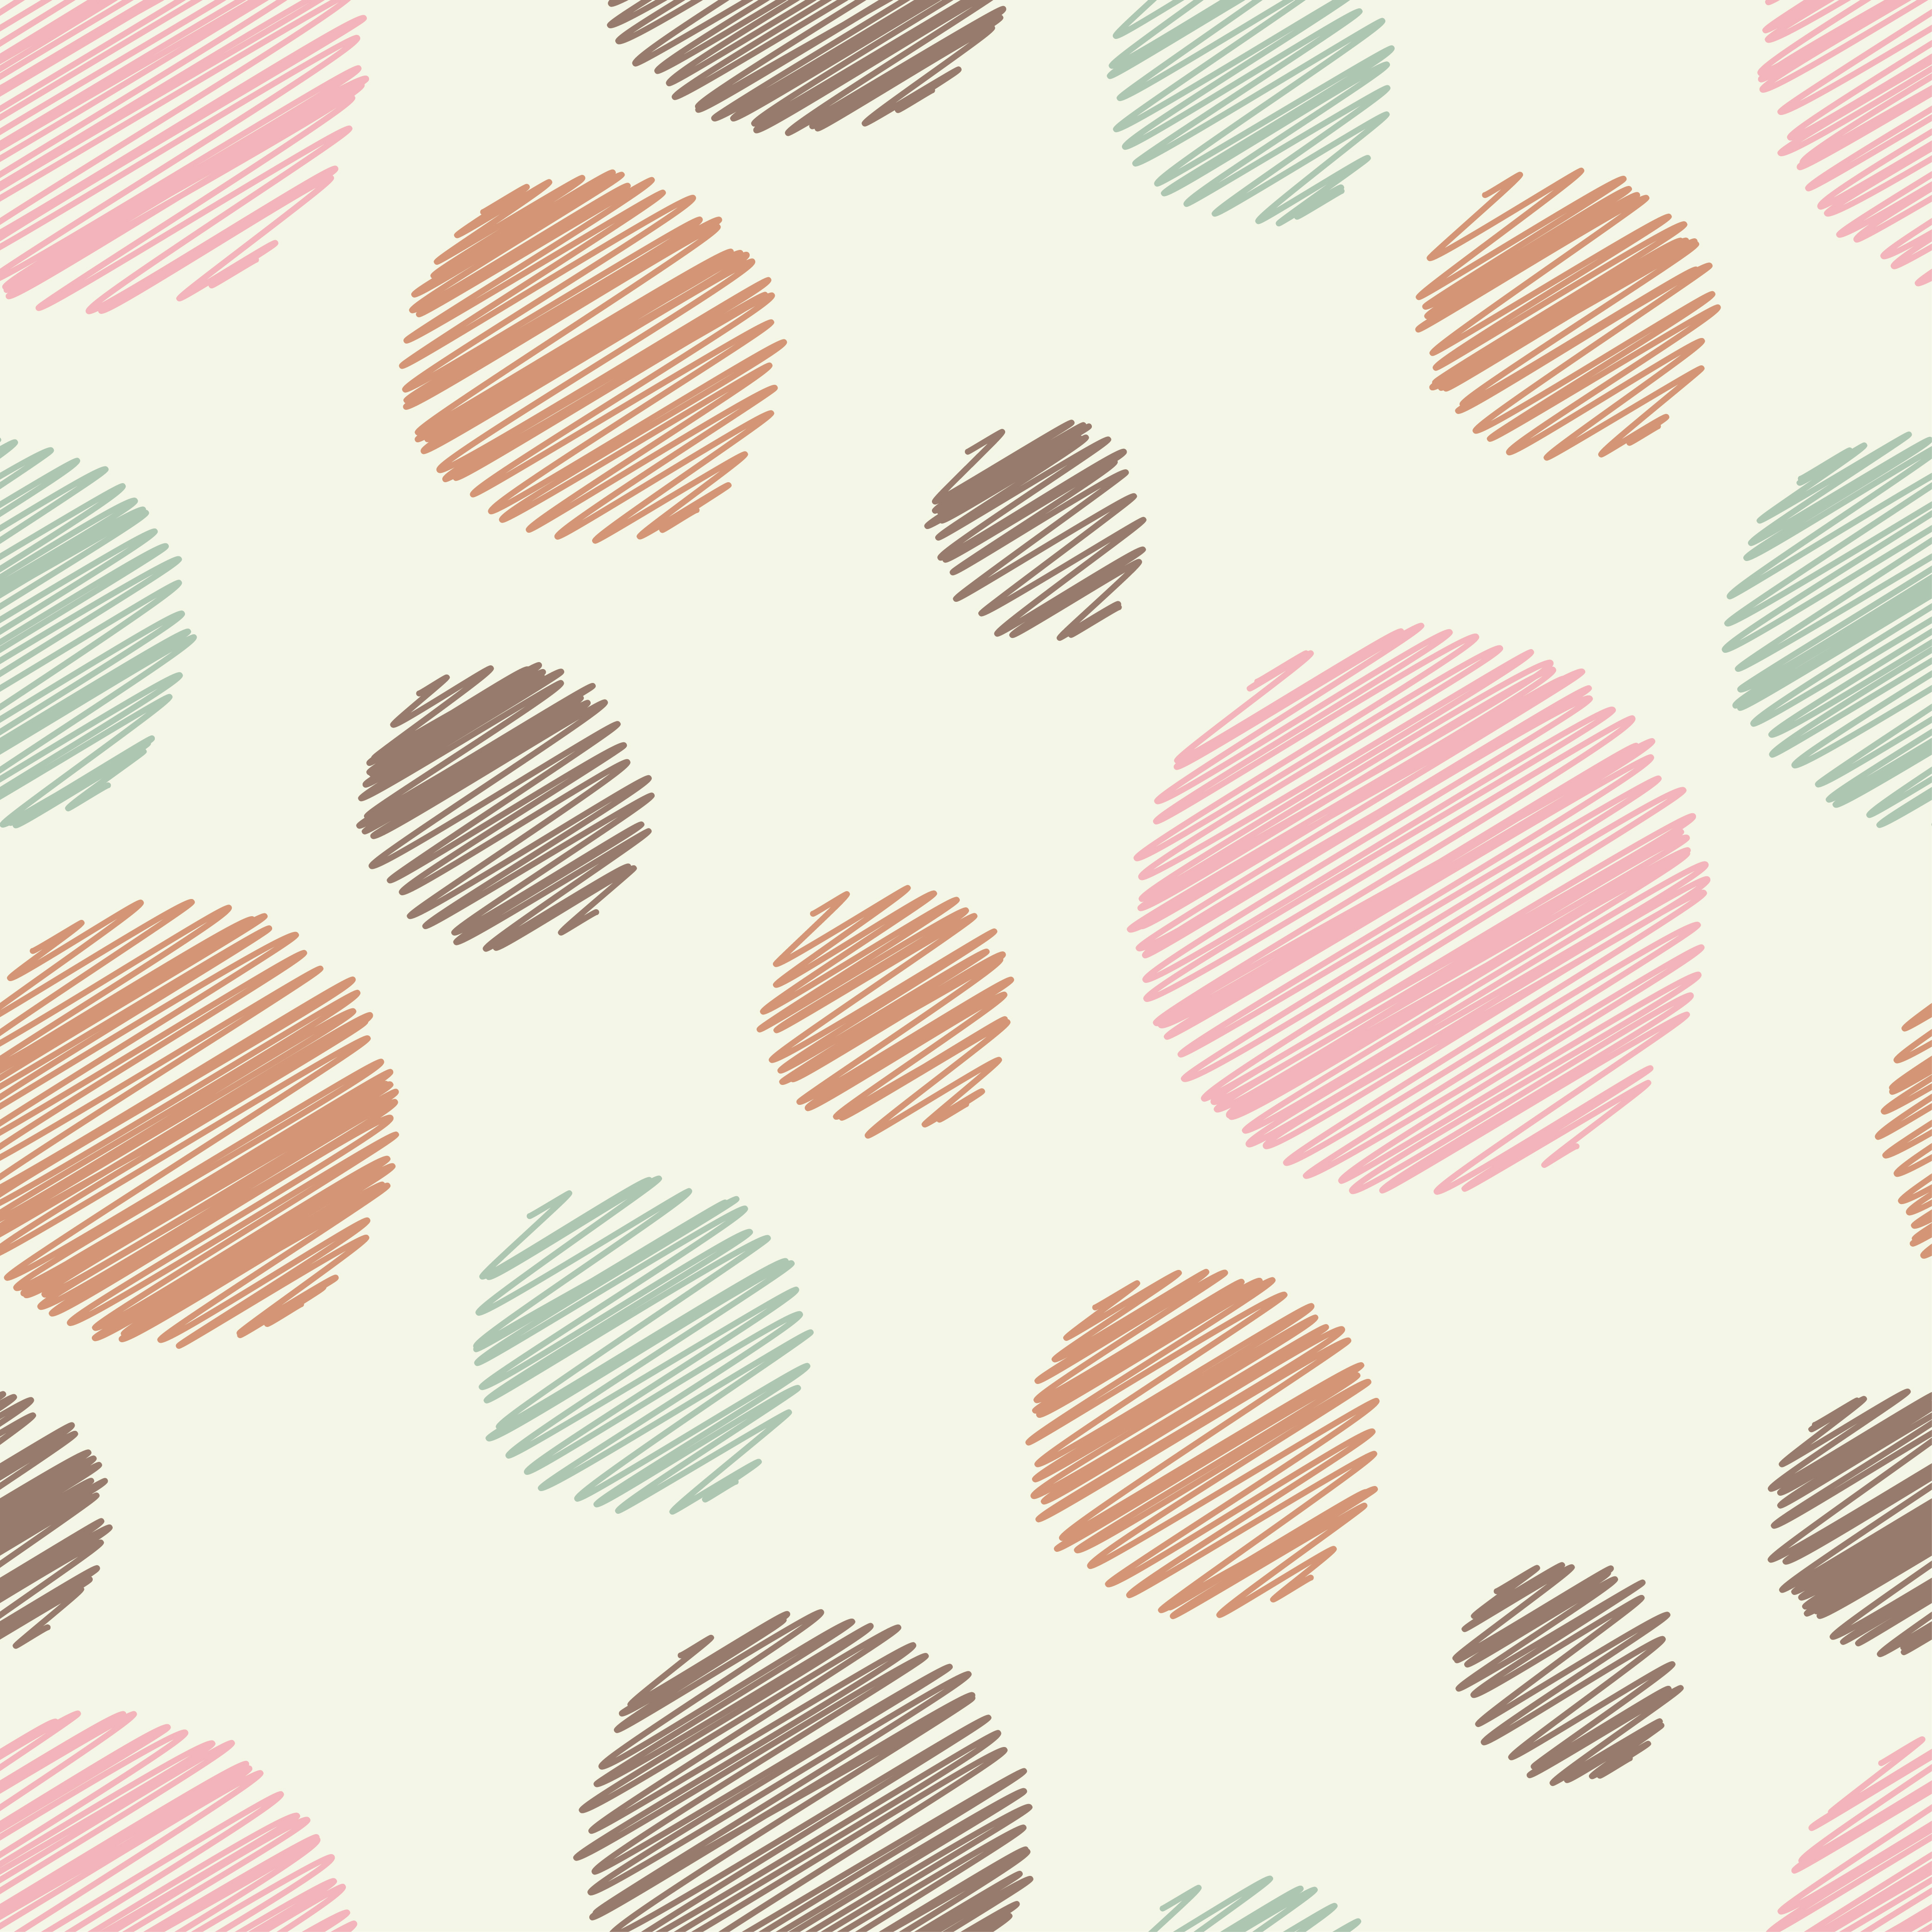 Polka dot seamless pattern. Vector illustration. Textile rapport.  example image 1